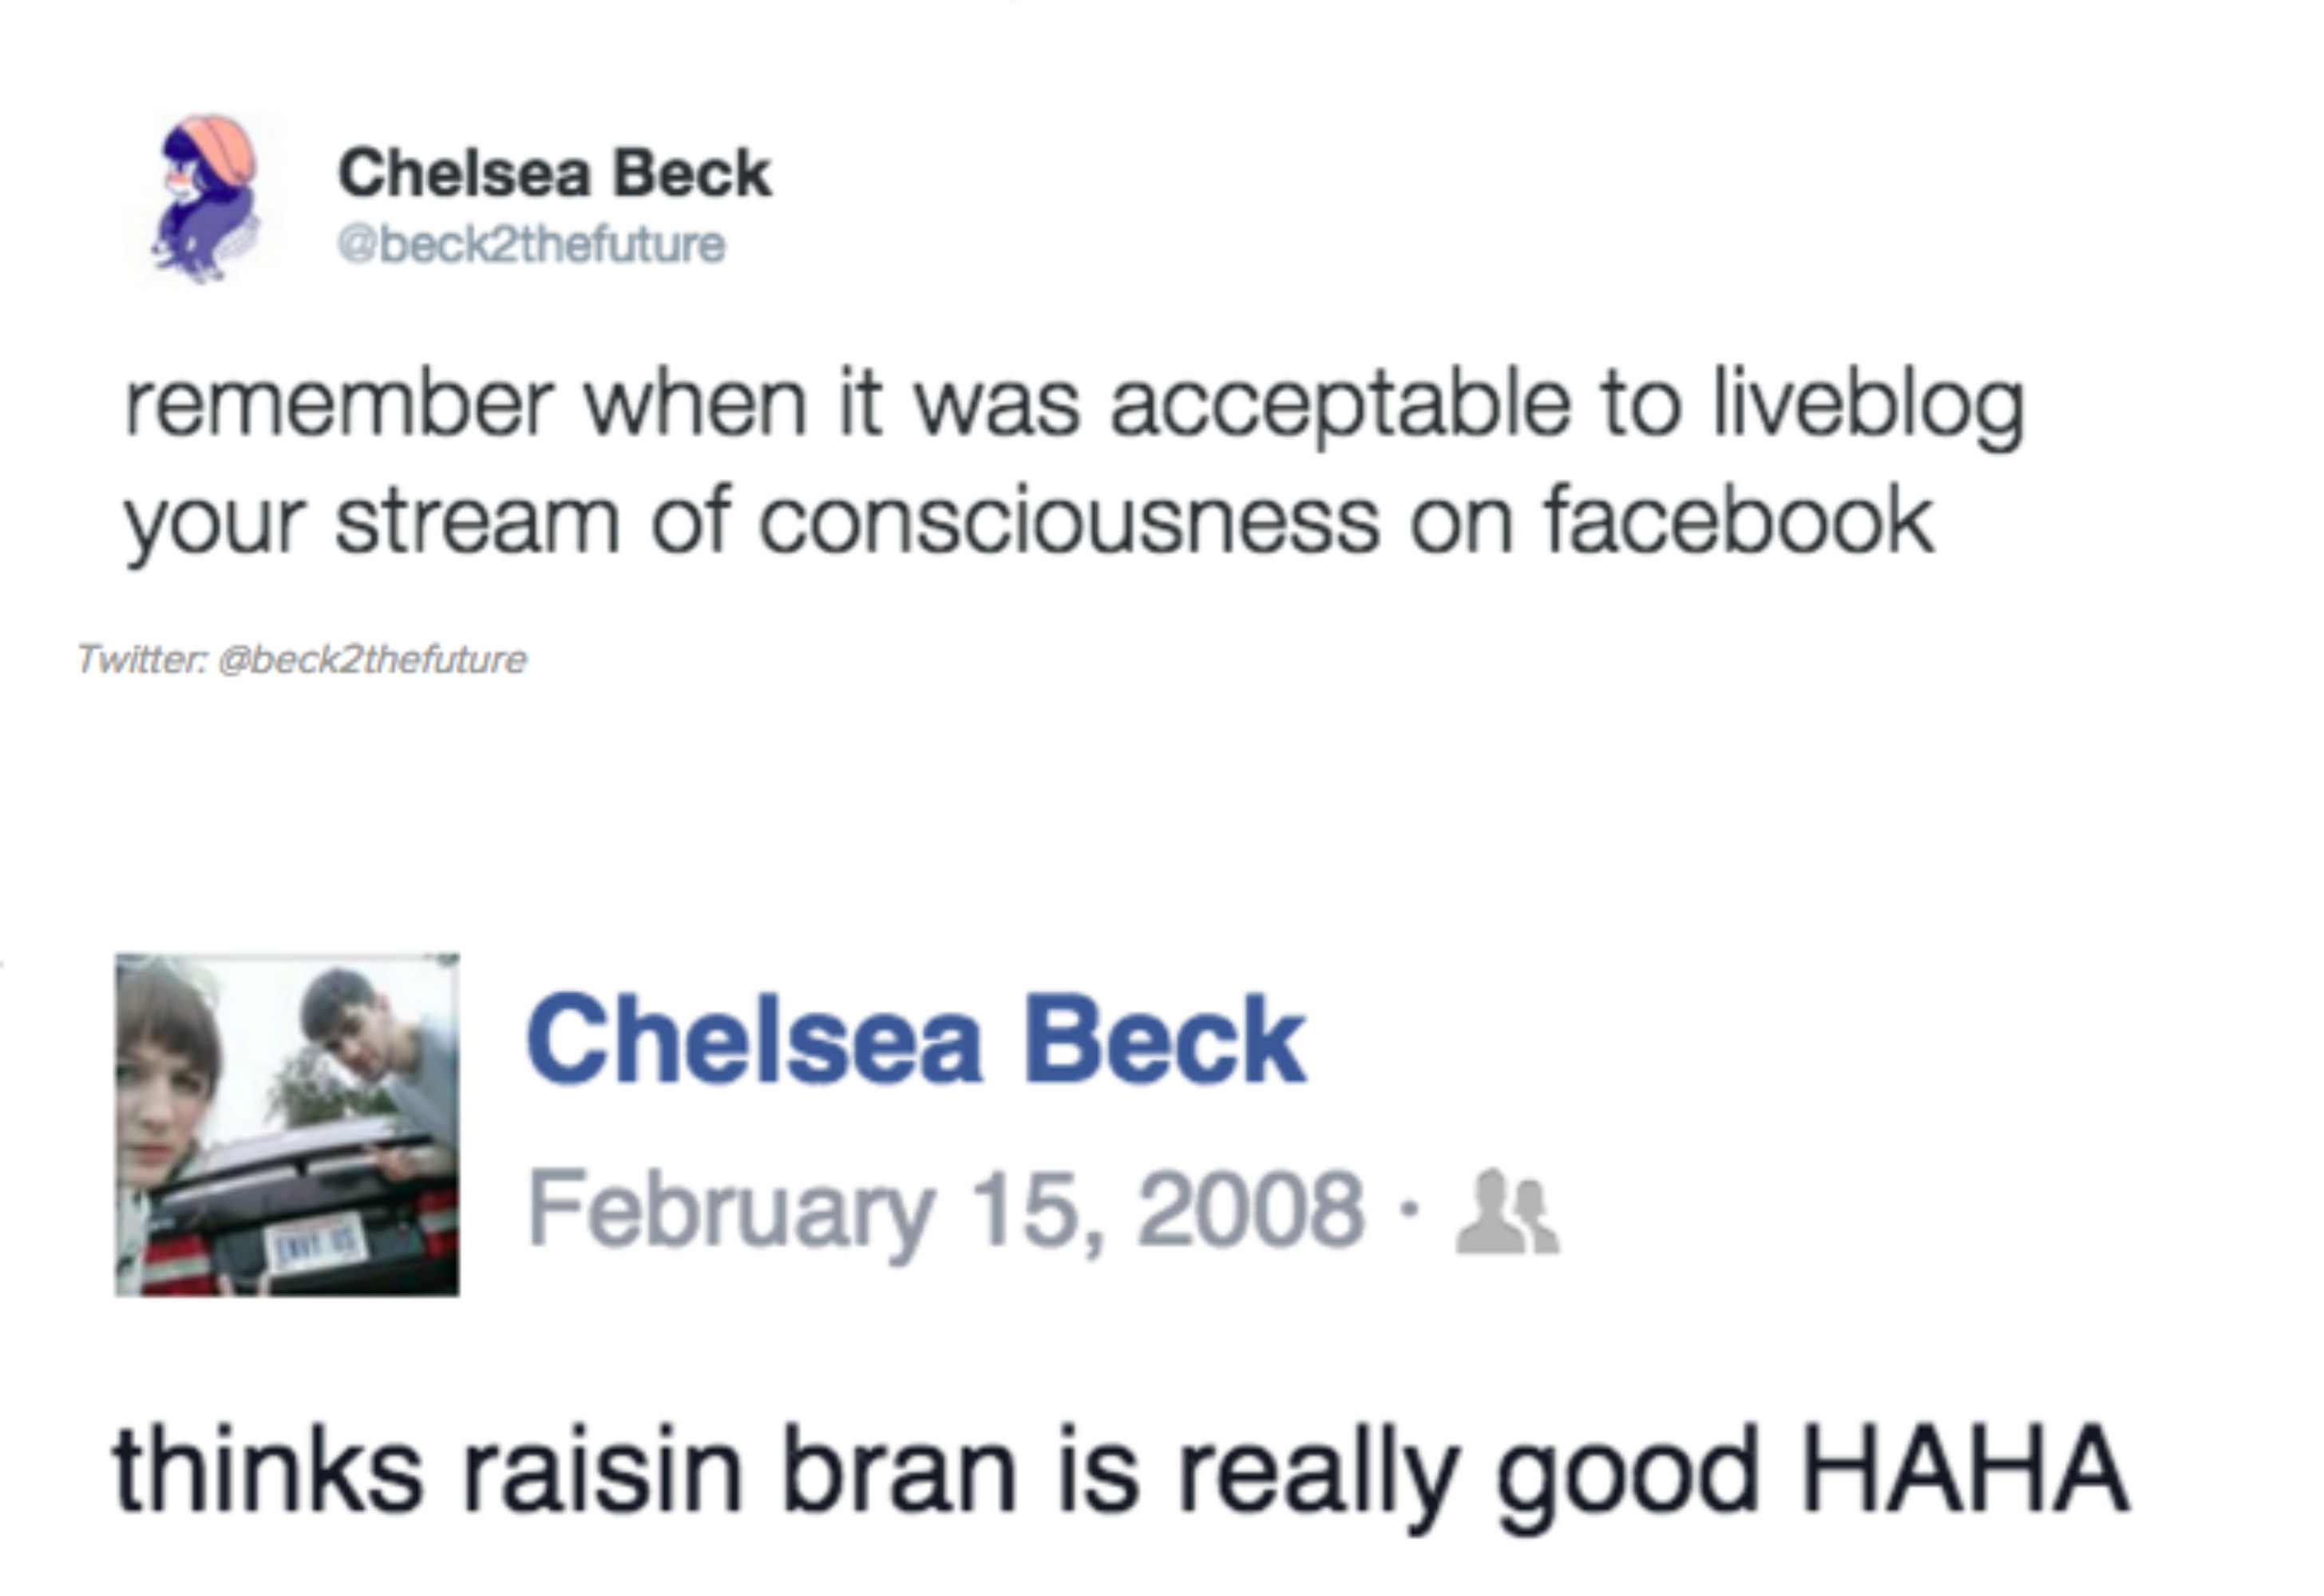 Facebook post of someone talking about how much they like Raisin Bran